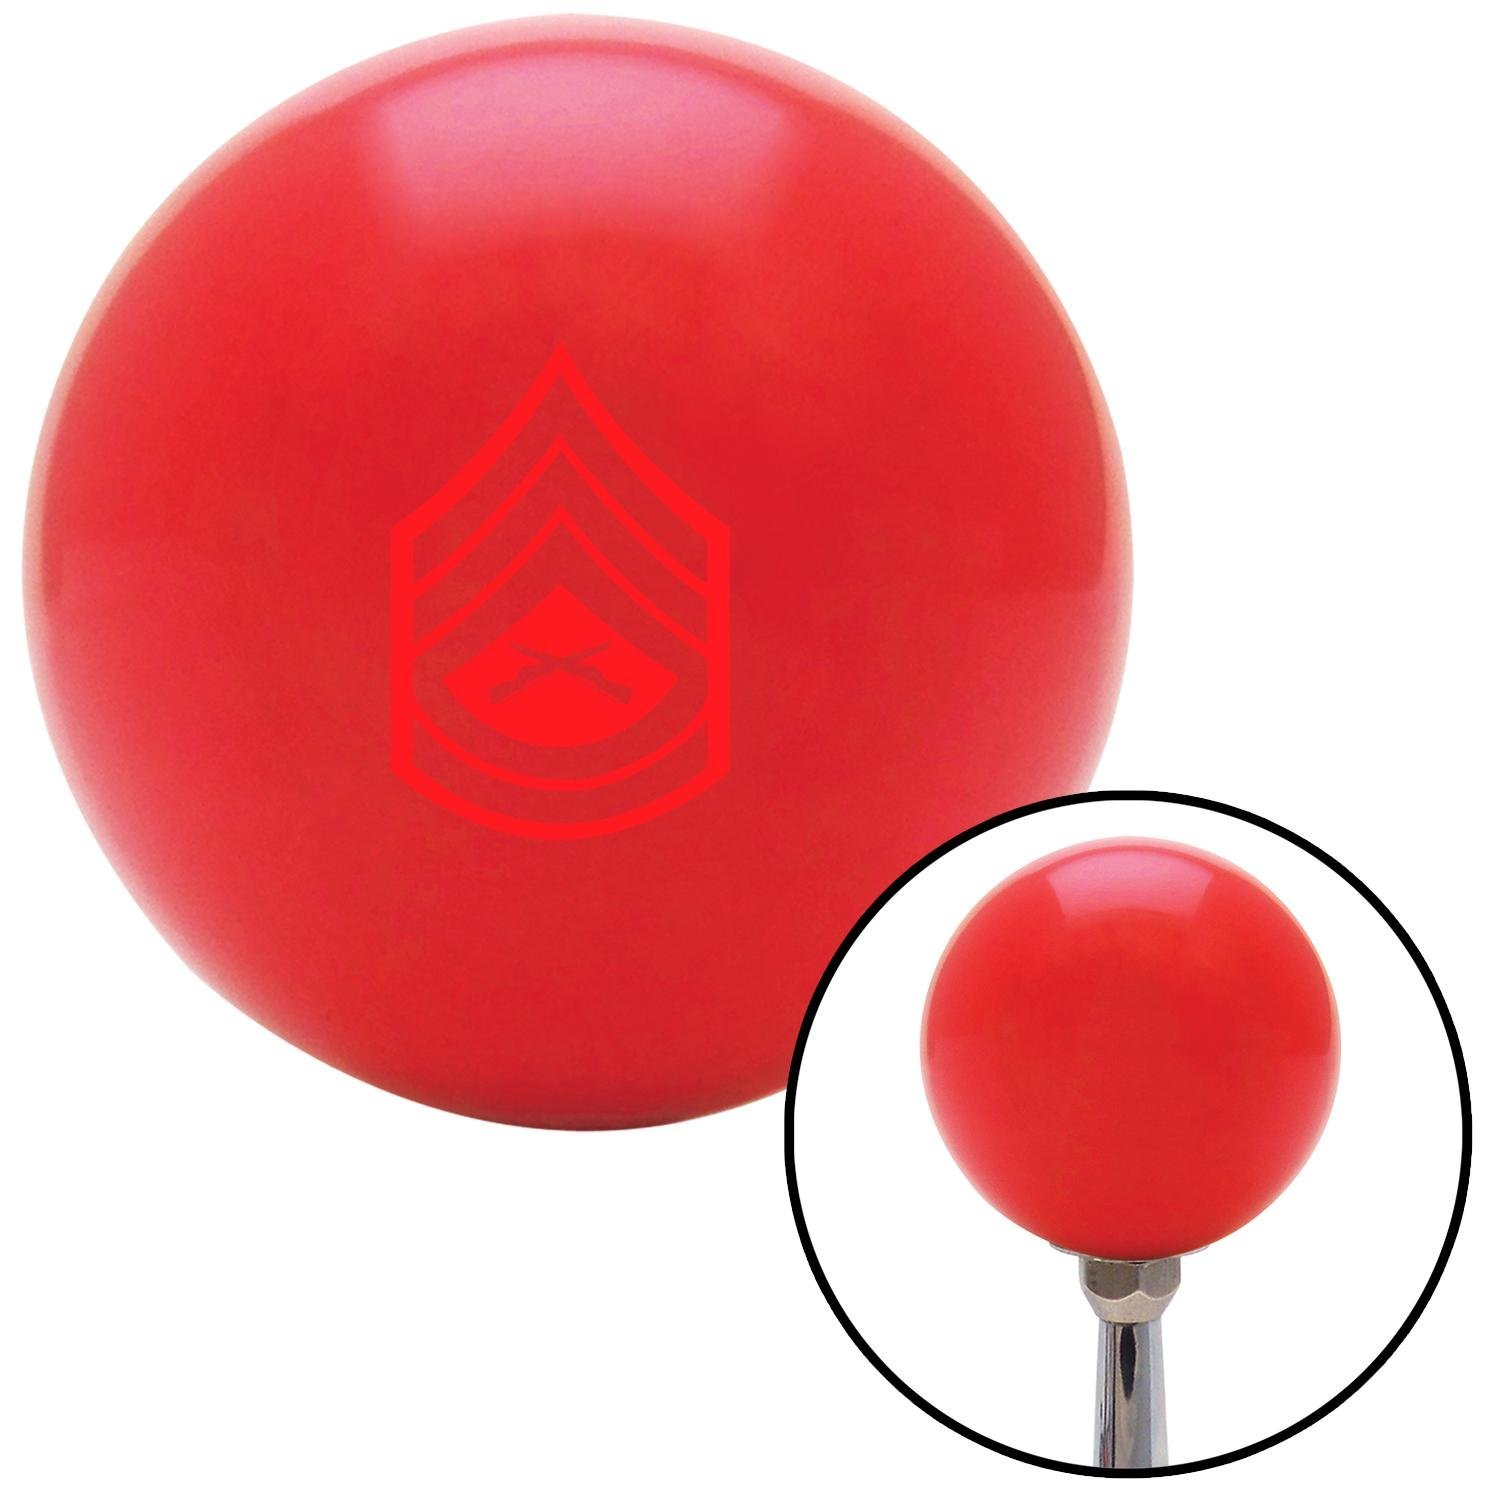 American Shifter 98454 Red Shift Knob with M16 x 1.5 Insert Red 06 Gunnery Sergeant